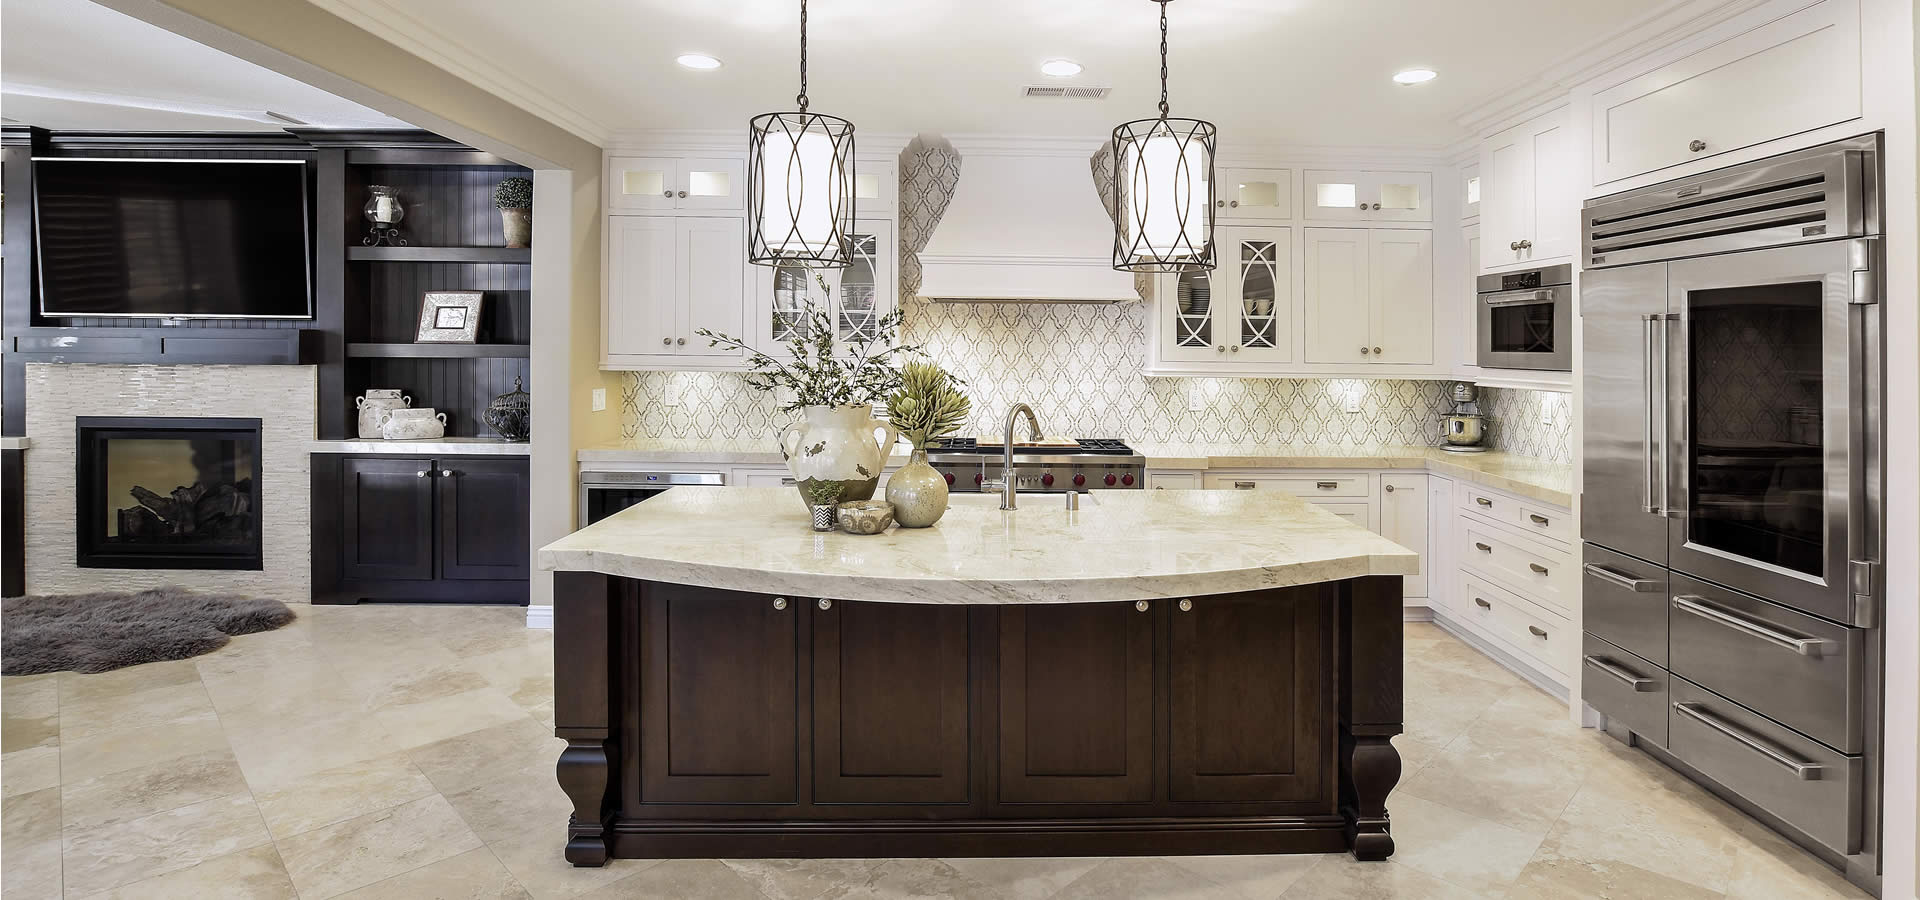 Best kitchen countertop showroom in Lake Forest